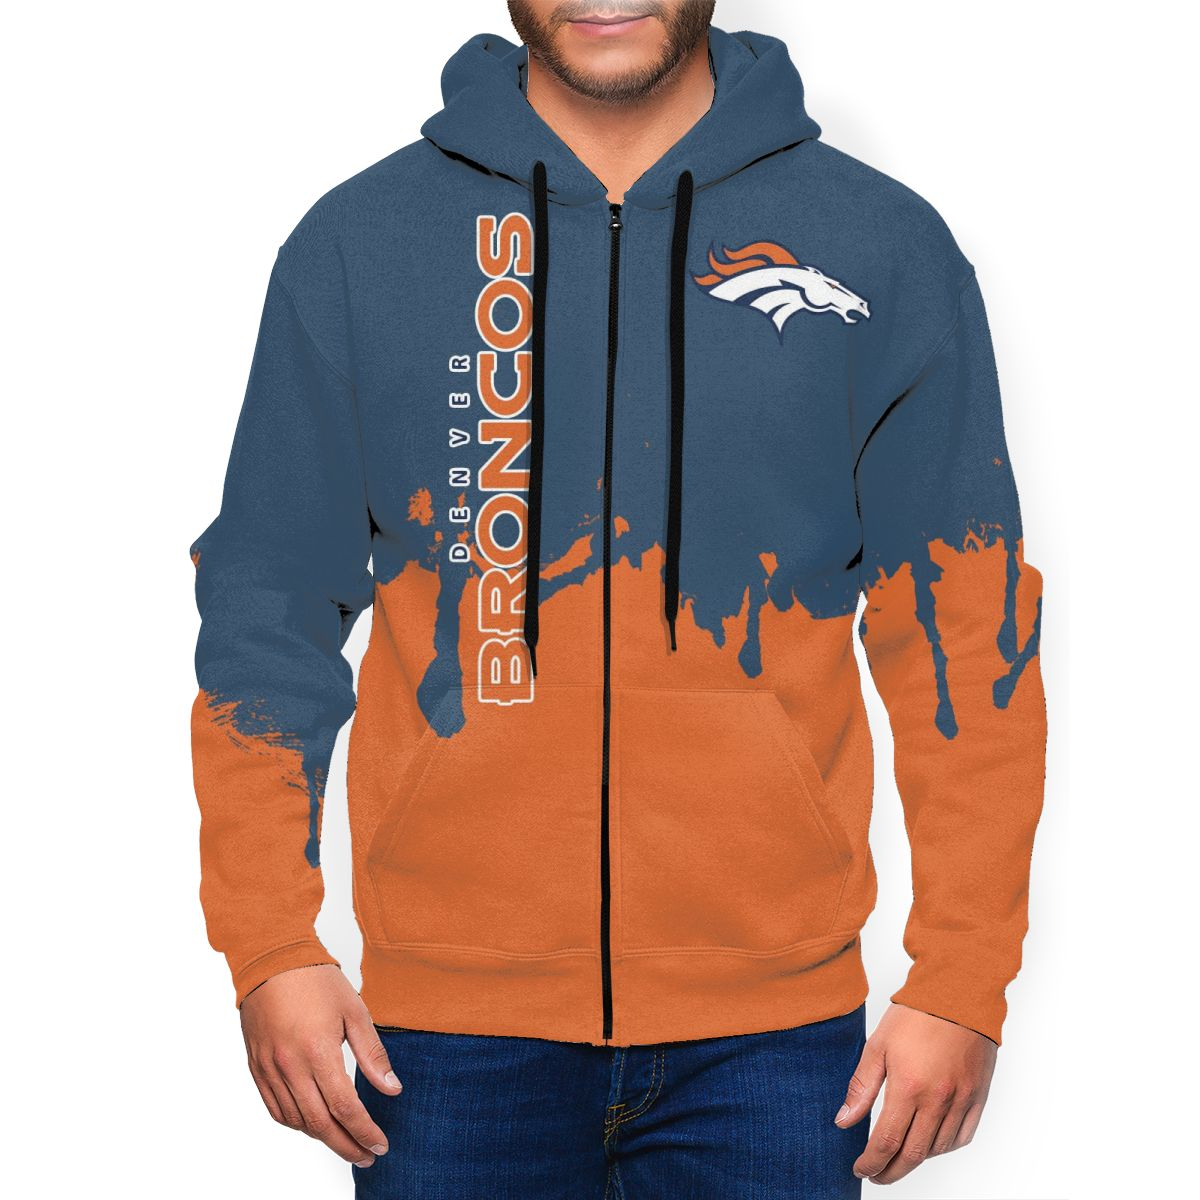 Broncos Team Men's Zip Hooded Sweatshirt